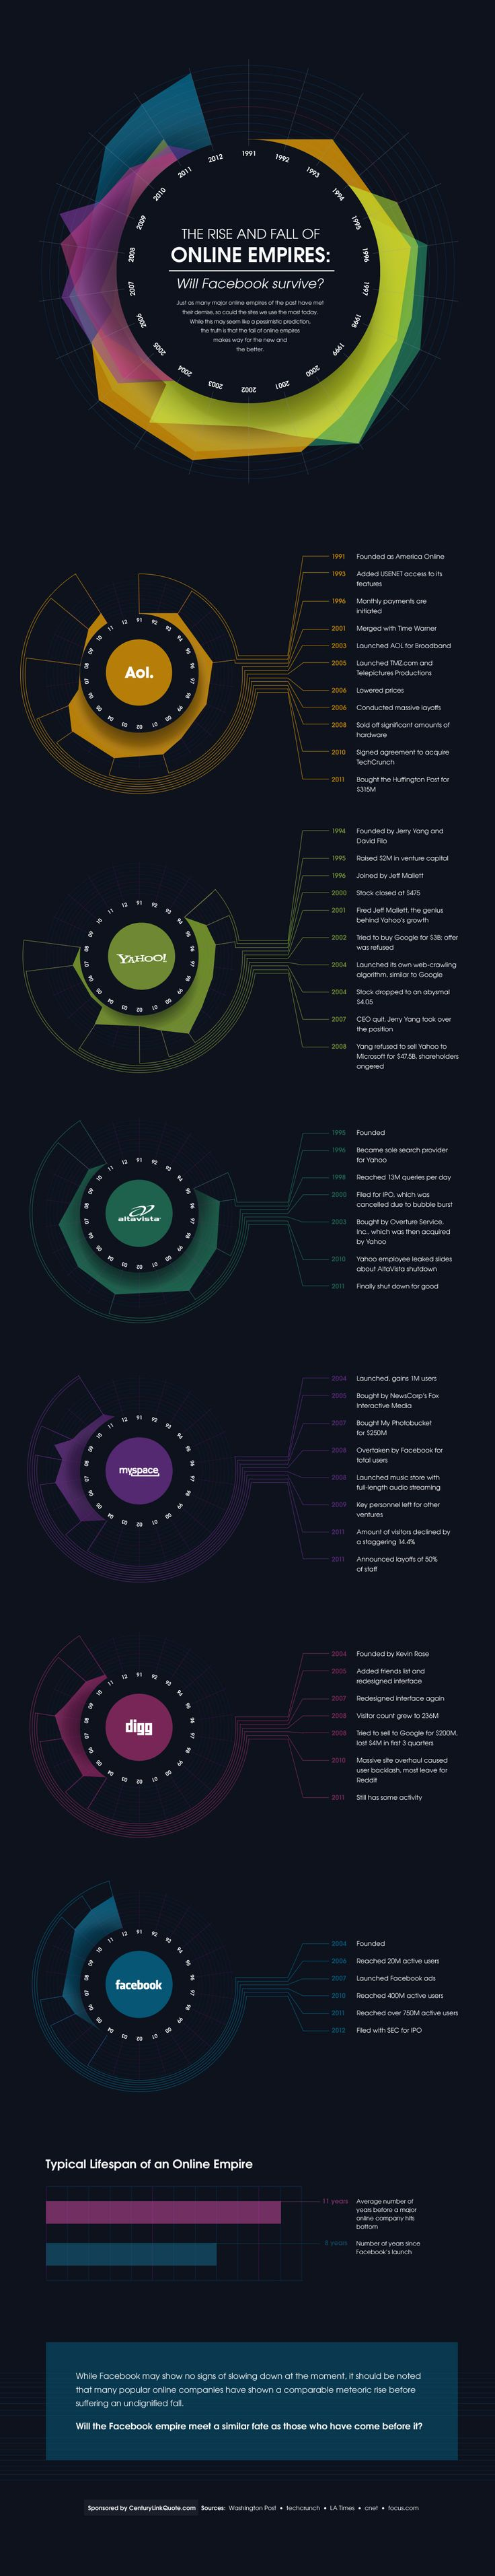 the rise and fall of web empires (mostly sharing because this graphic design is amazing)